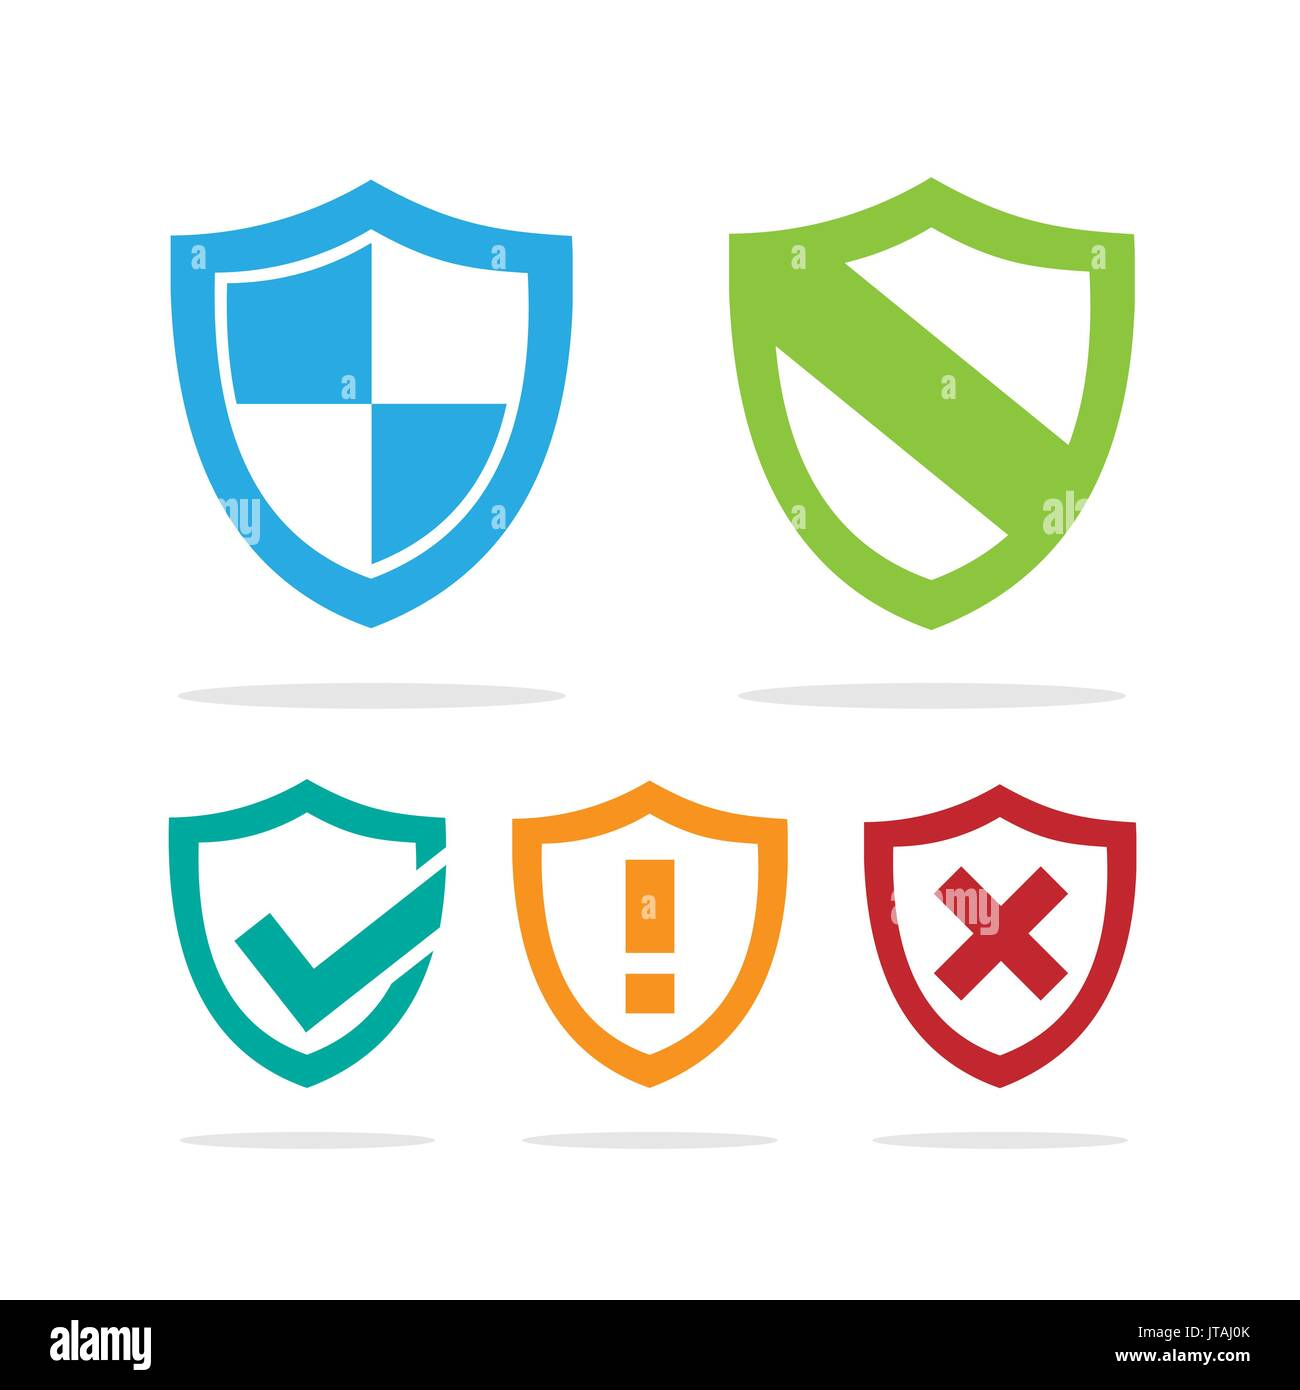 Set of colored protection shield icons on a white background - Stock Image